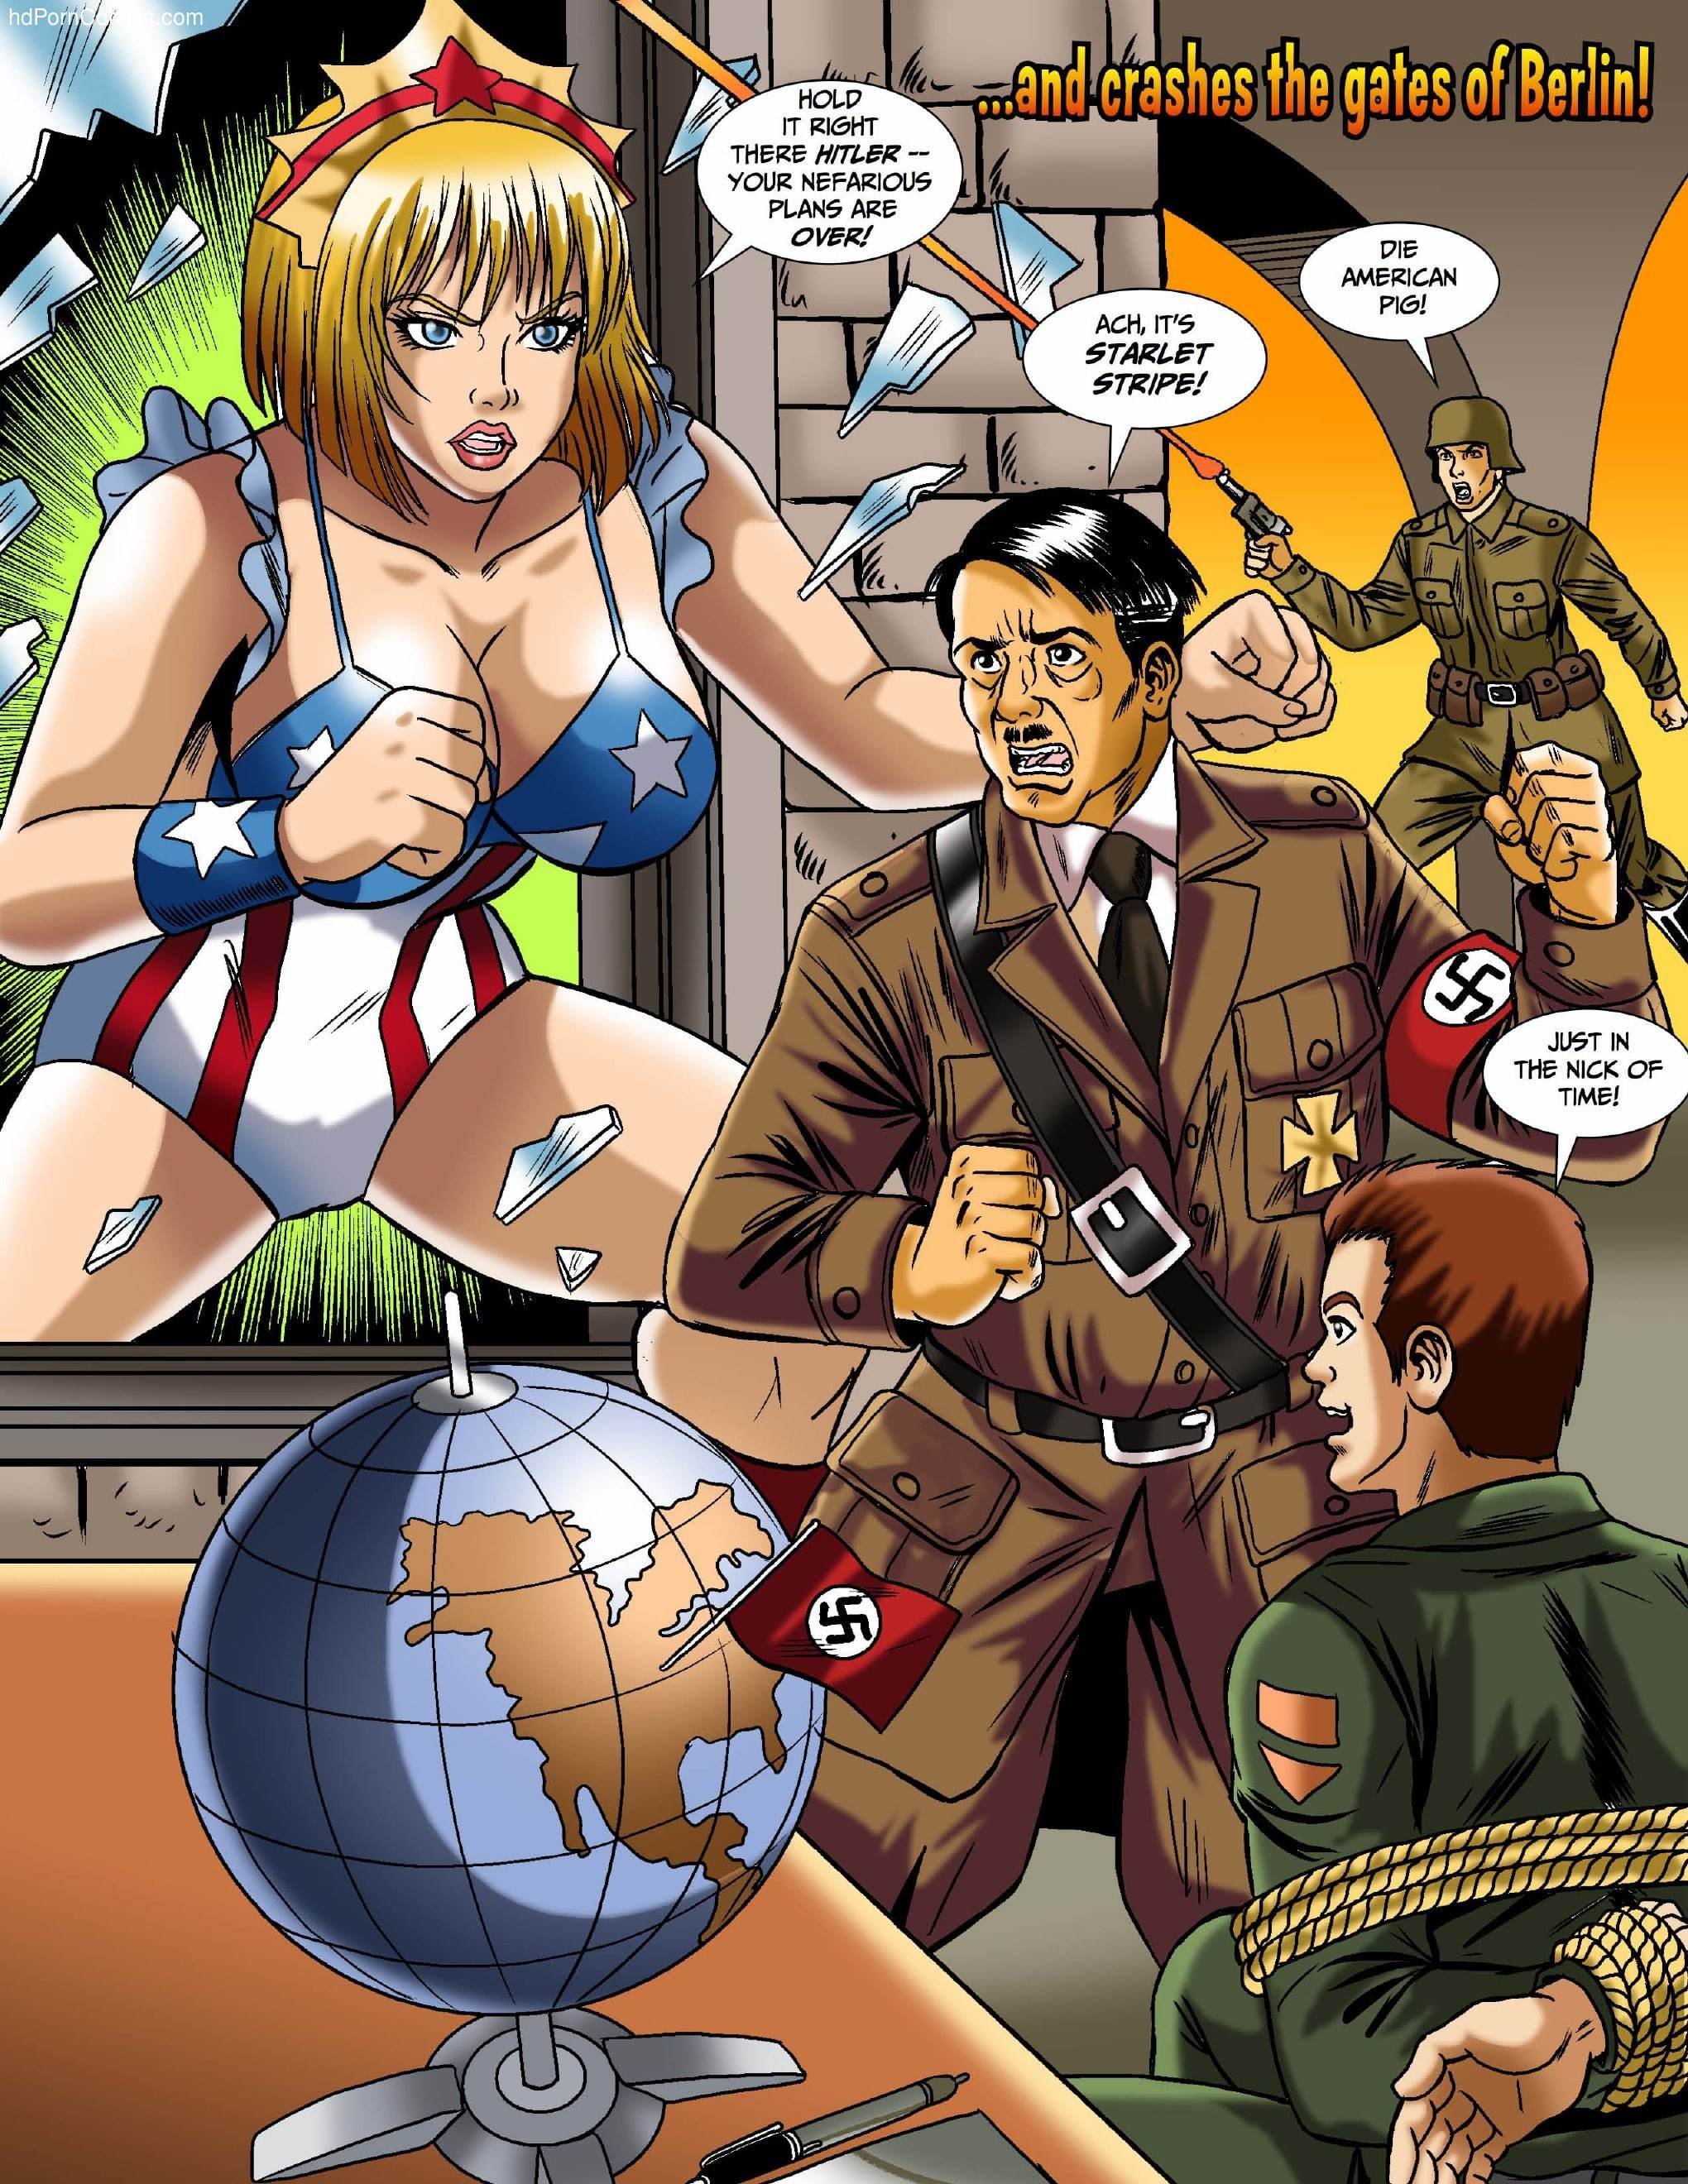 Xxx Comics- Dreamtales -Starlet Stripe4 free sex comic